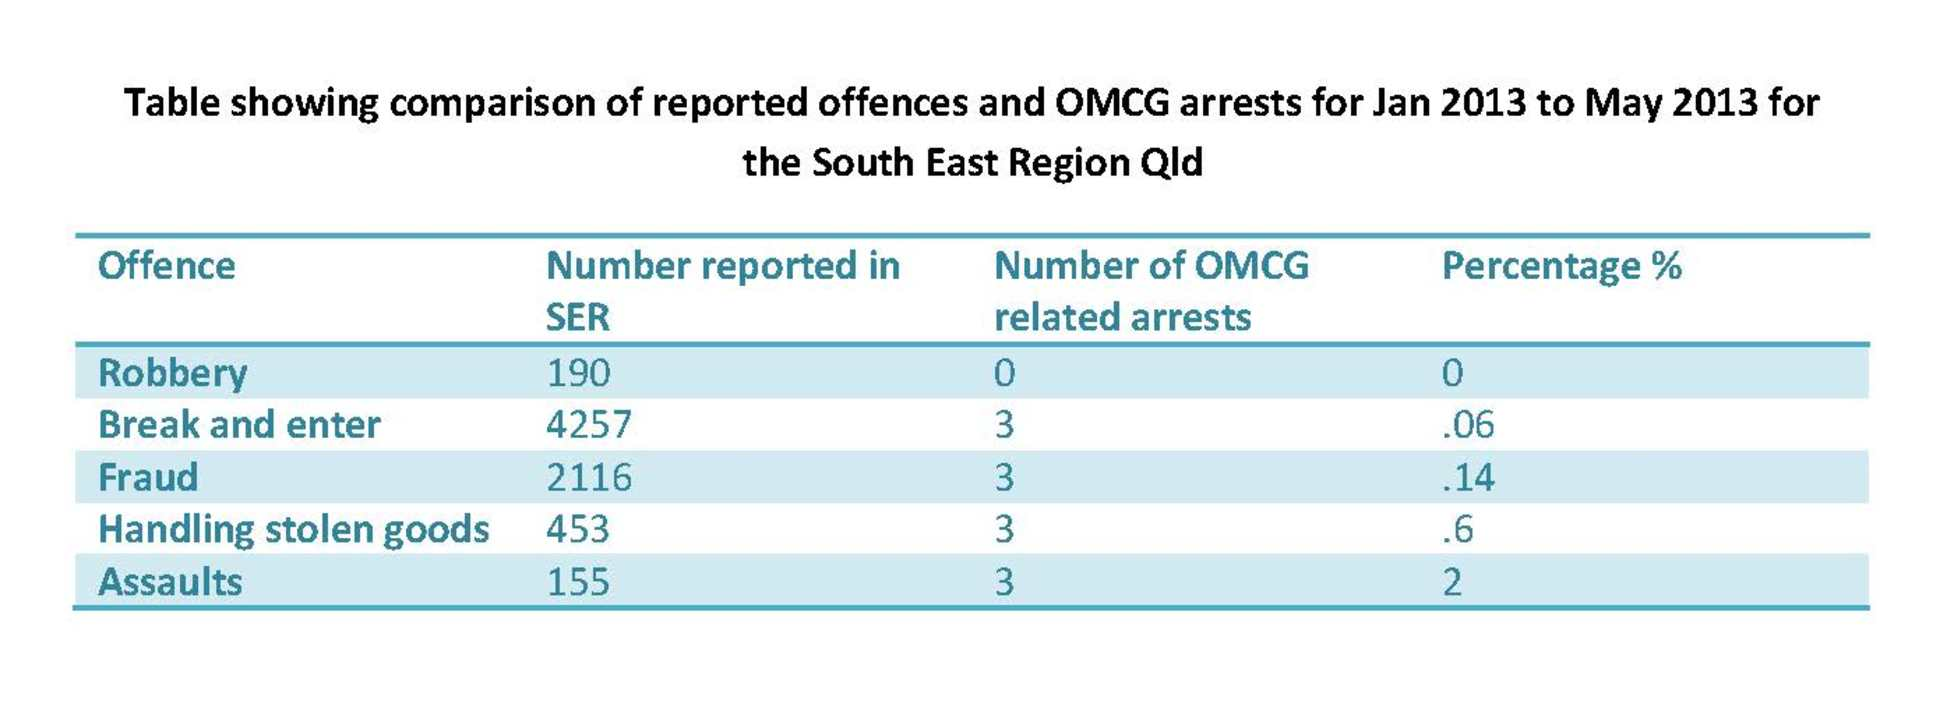 Comparison of reported offences and OMCG arrests for January-May 2013 in southeastern Queensland